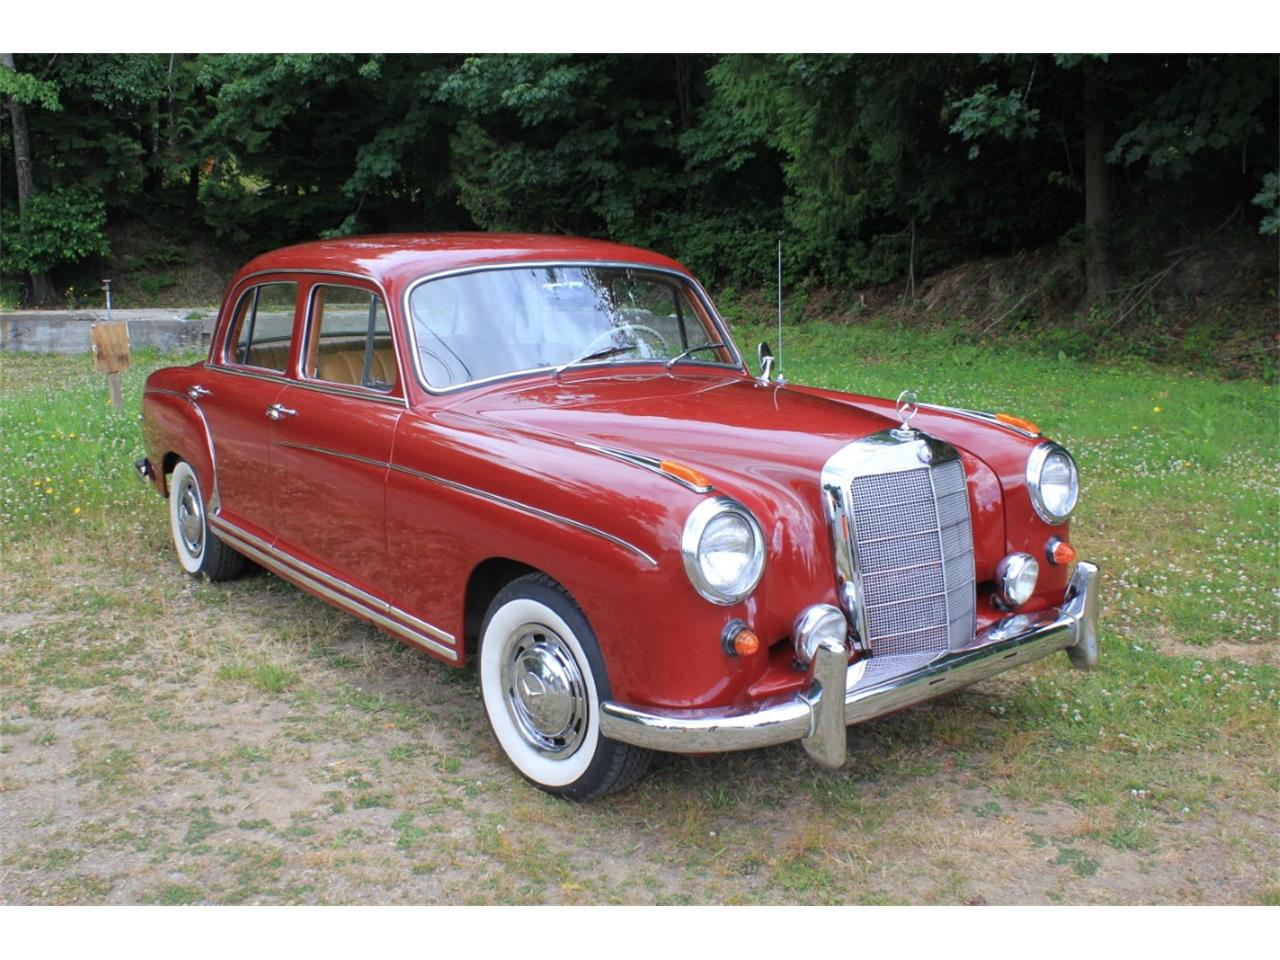 1959 mercedes benz 220 for sale in tacoma wa classiccarsbay com classiccarsbay